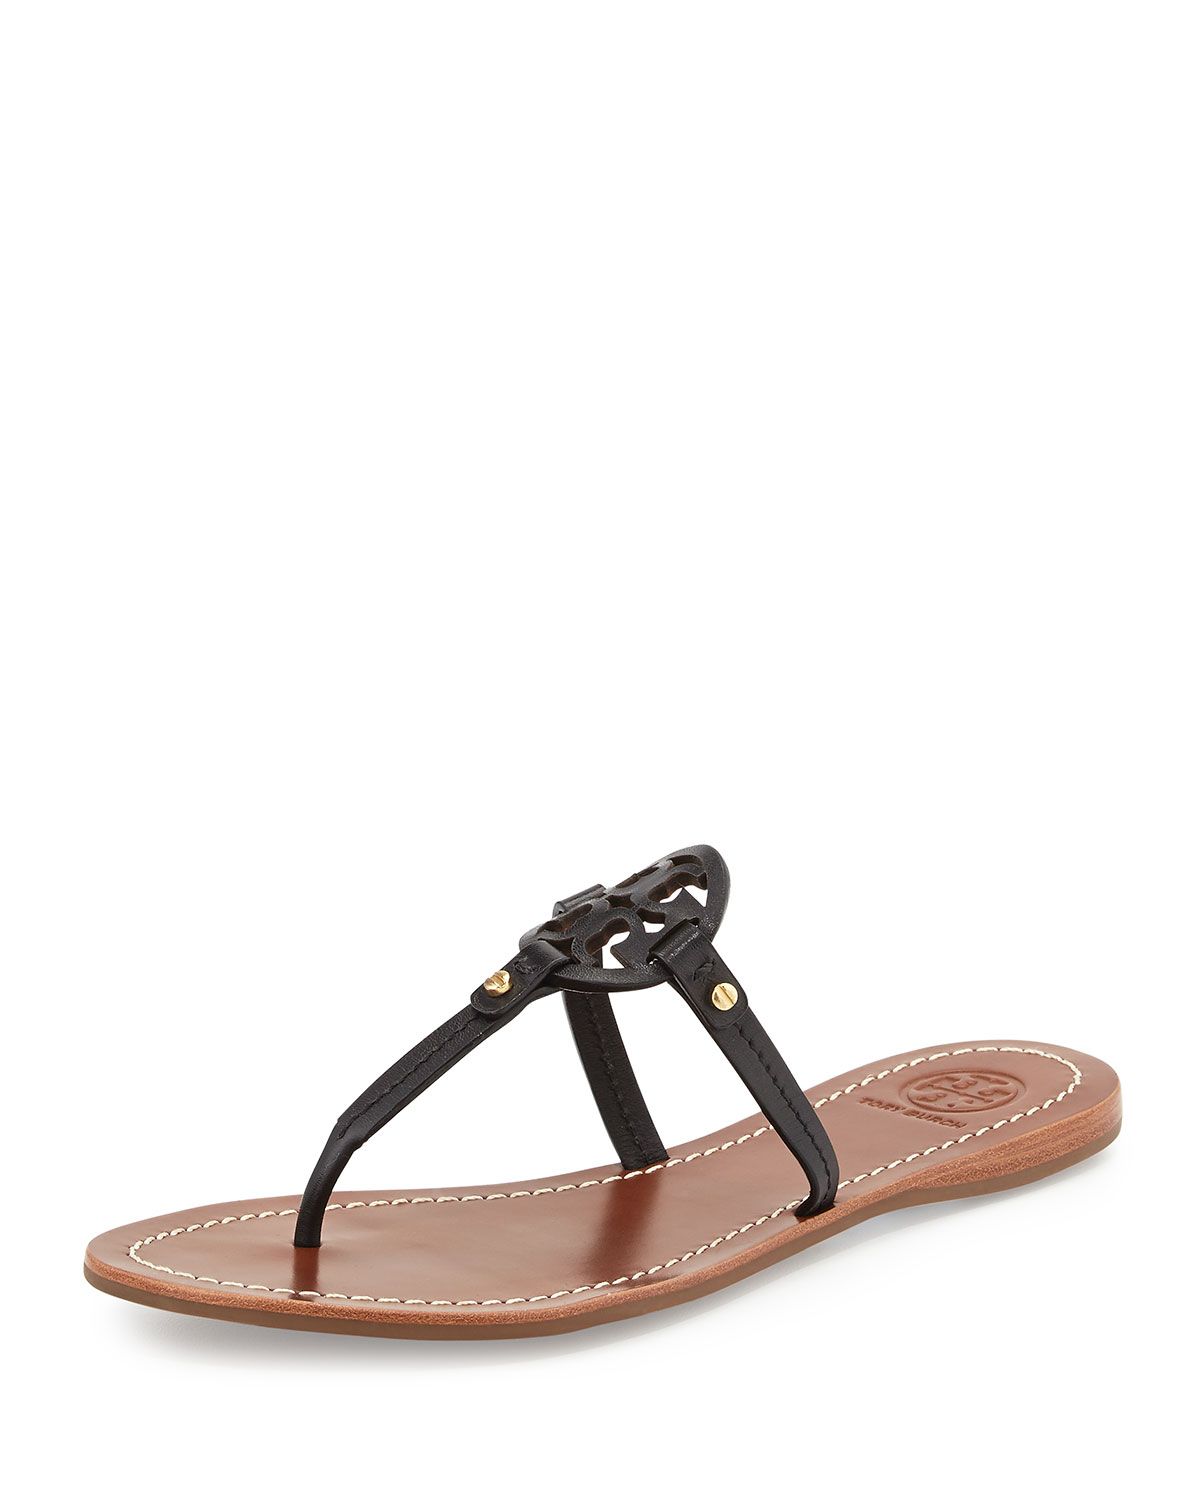 3dac023042dd17 Tory Burch Mini Miller Leather Flat Thong Sandal